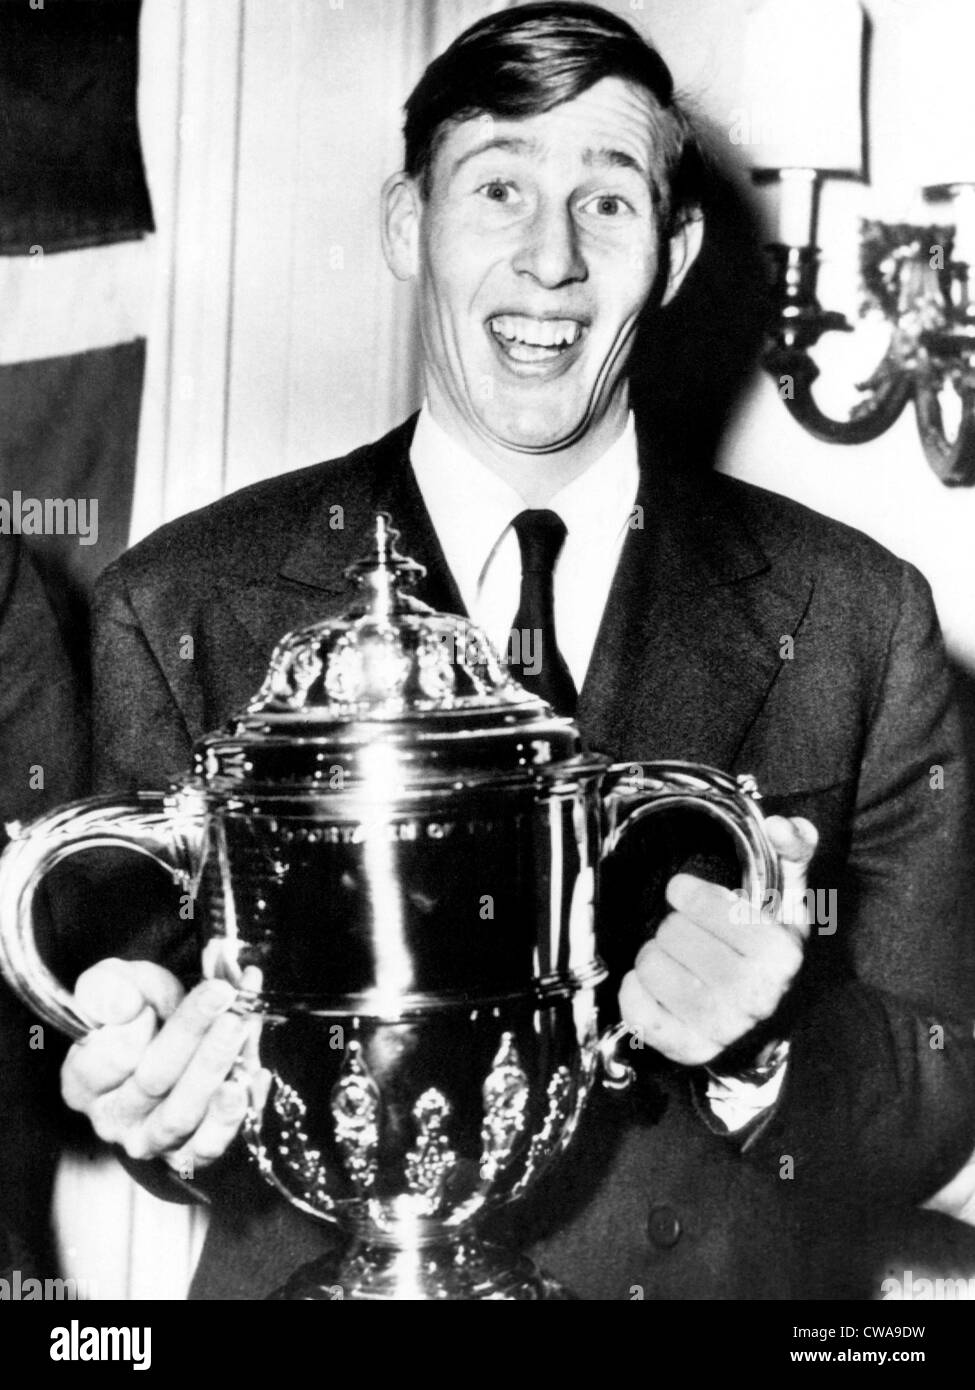 Roger Bannister, the first person to run a mile in less than four minutes, holds a Sporting Record Trophy, 1954. - Stock Image